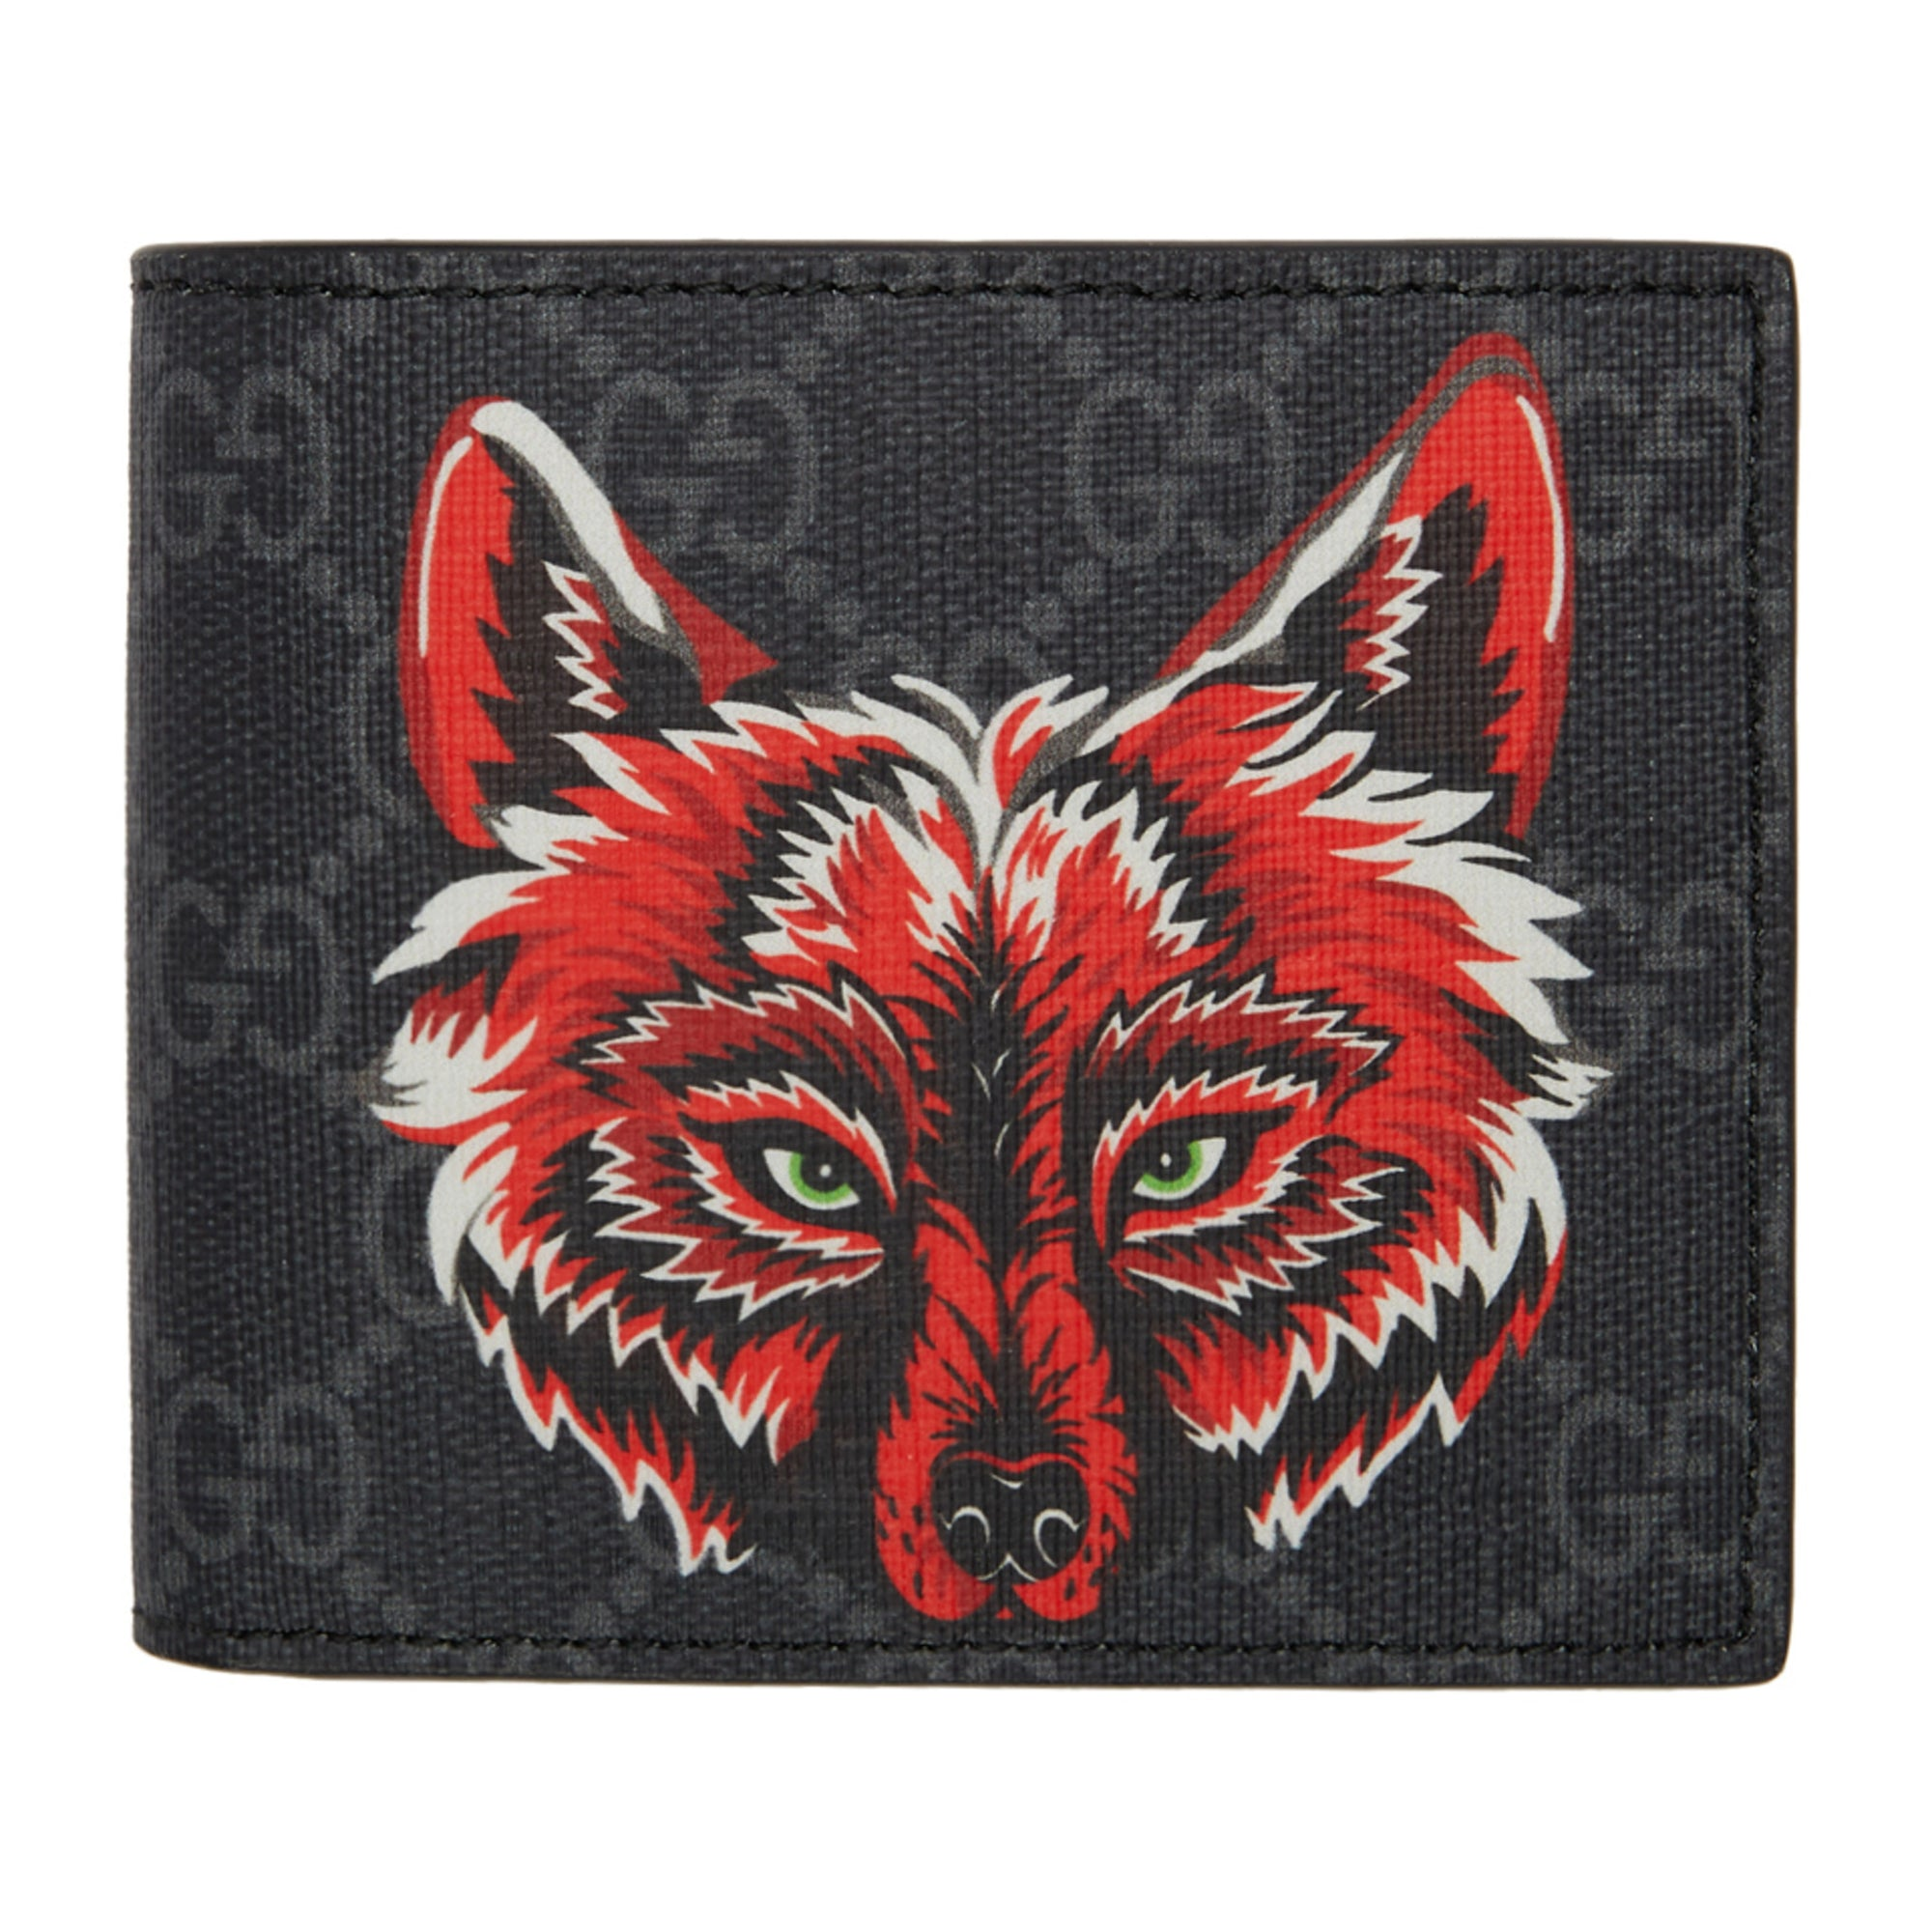 77cc418797da3 Men s Gucci GG Supreme Wallet With Wolf - Members Only Lux